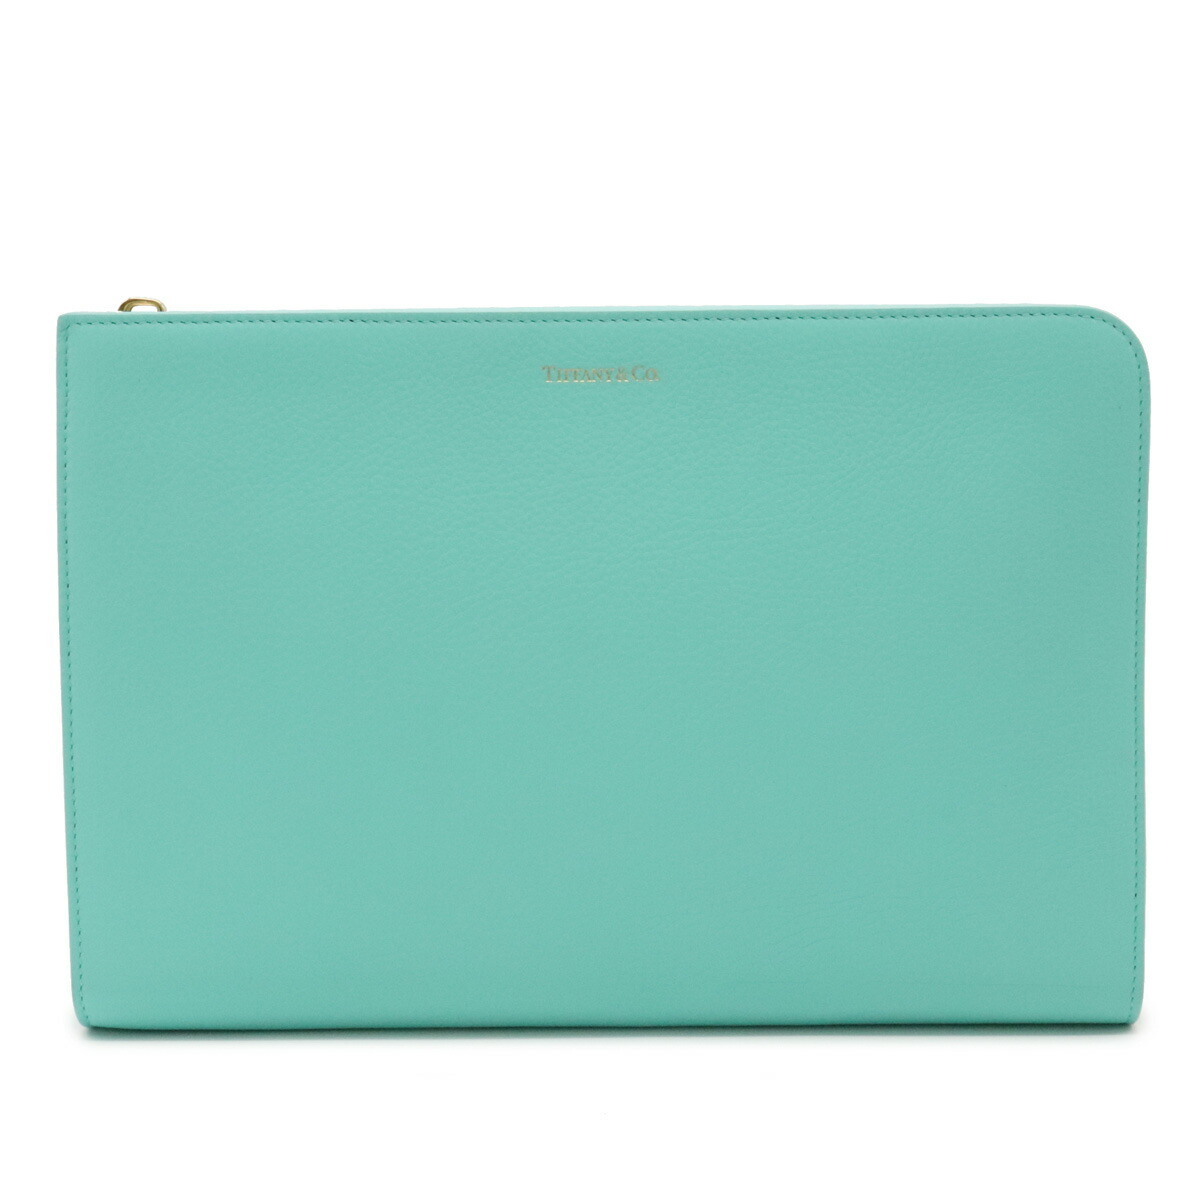 TIFFANY & Co. Tiffany Clutch Bag Second Pouch Leather Blue Gold Hardware